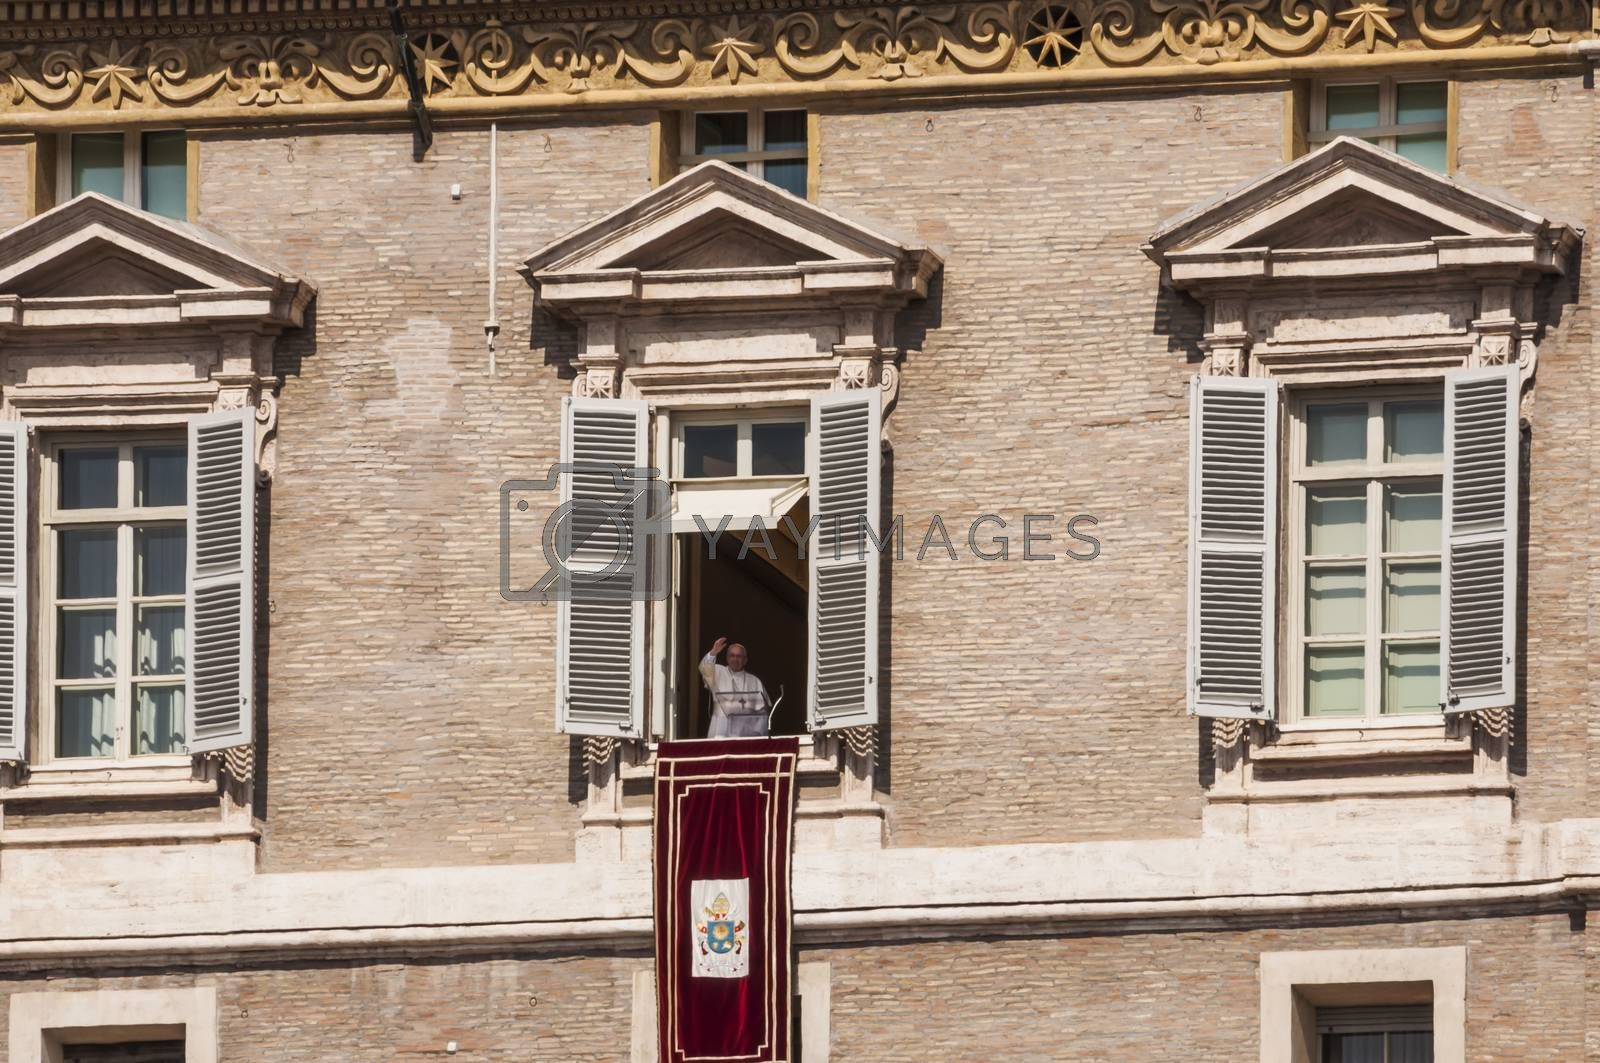 VATICAN CITY - MARCH 30: sunday Angelus made by Pope Francis on March 30, 2014 in Vatican City